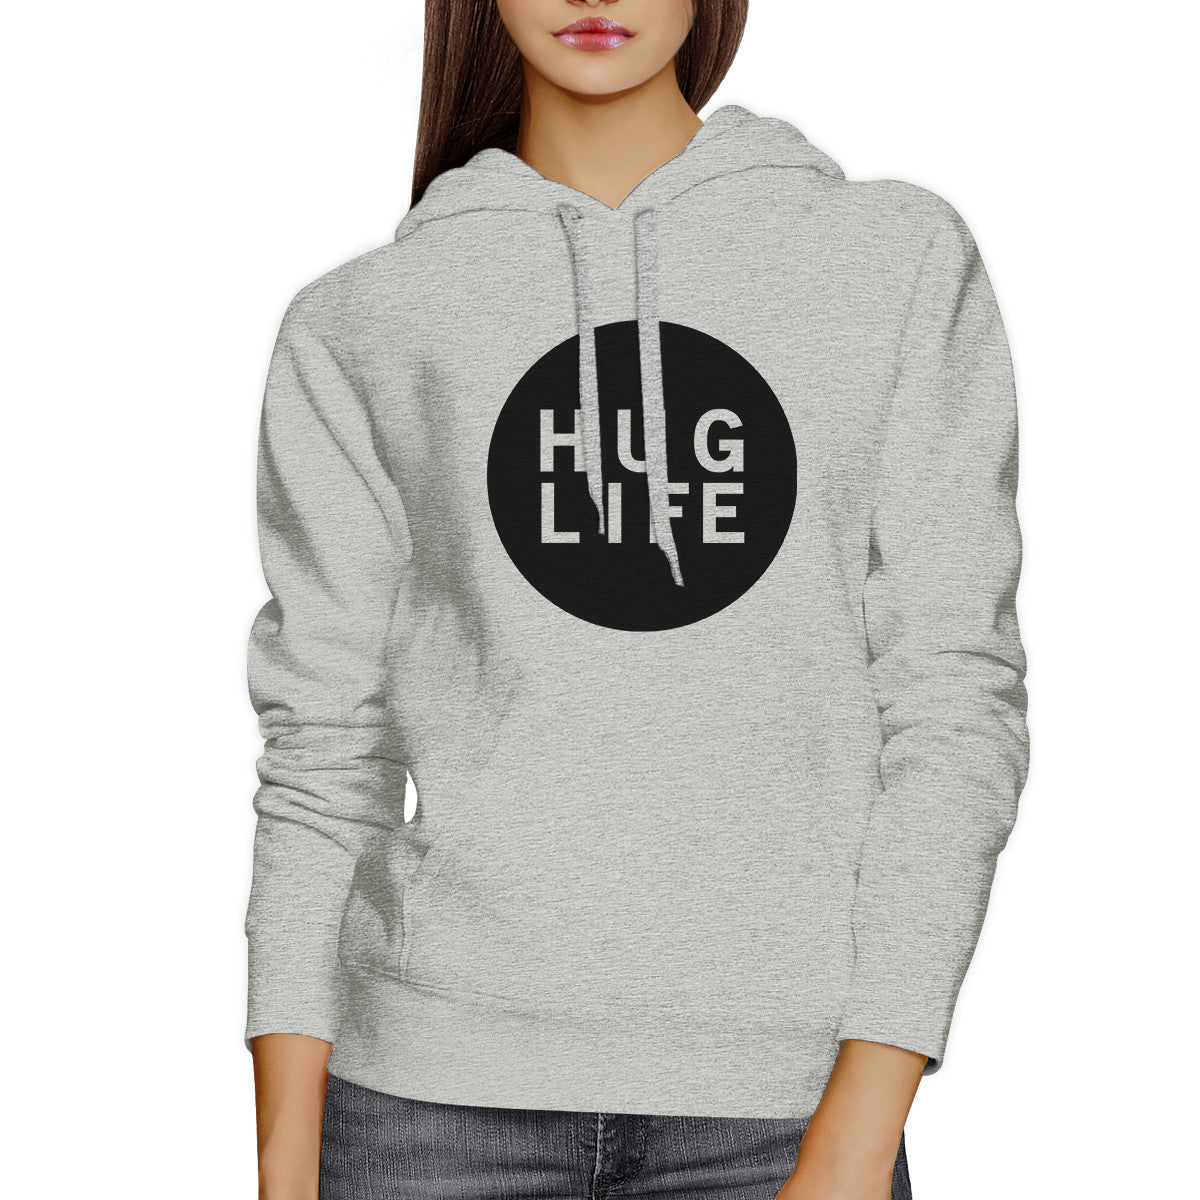 hug life unisex grey hoodie simple design life quote gift ideas 365inlove - Hoodie Design Ideas